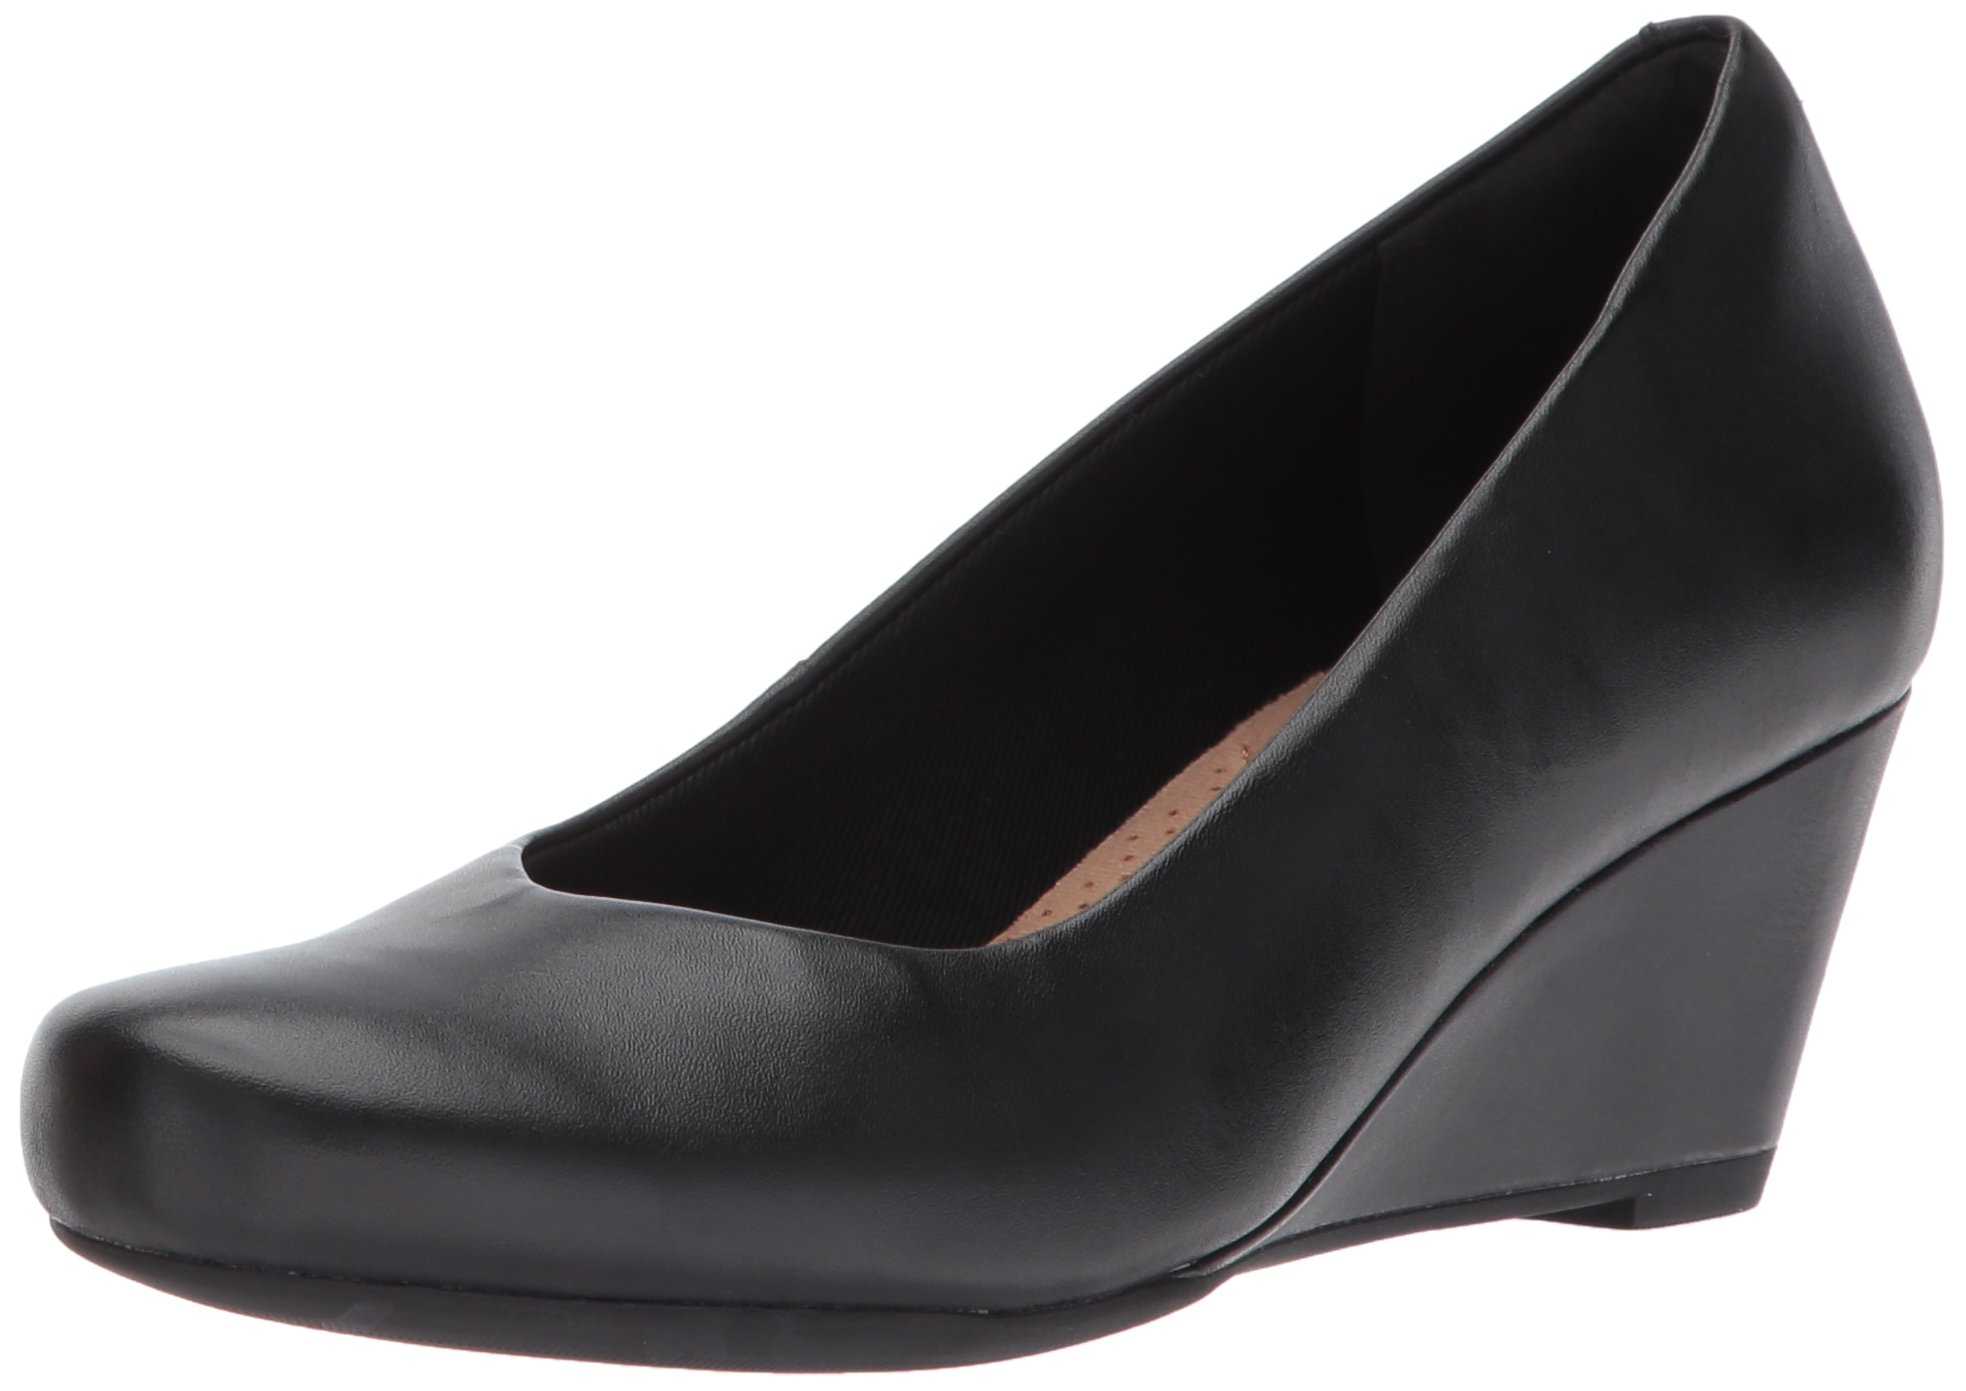 CLARKS Women's Flores Tulip Wedge Pump,Black Leather,8 M US